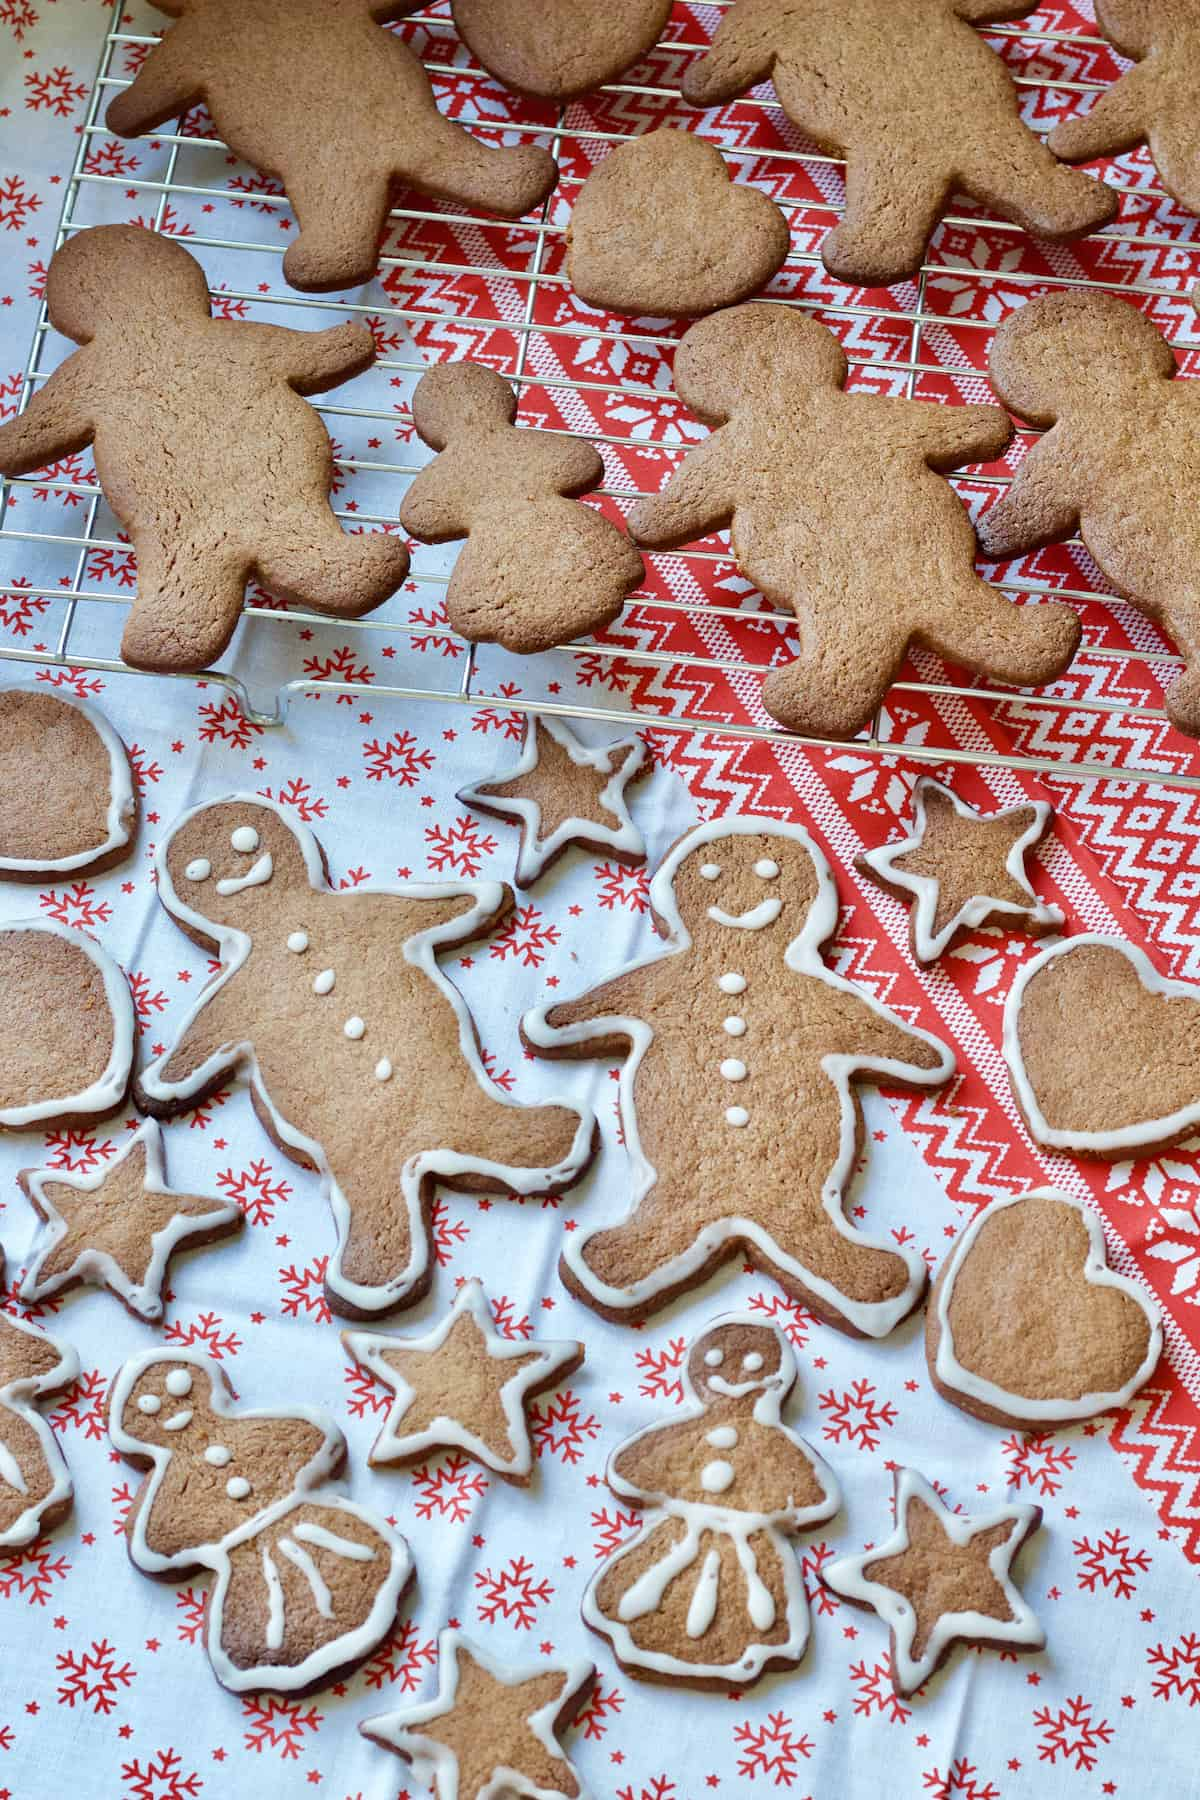 Spread of iced and uniced gingerbread biscuits.